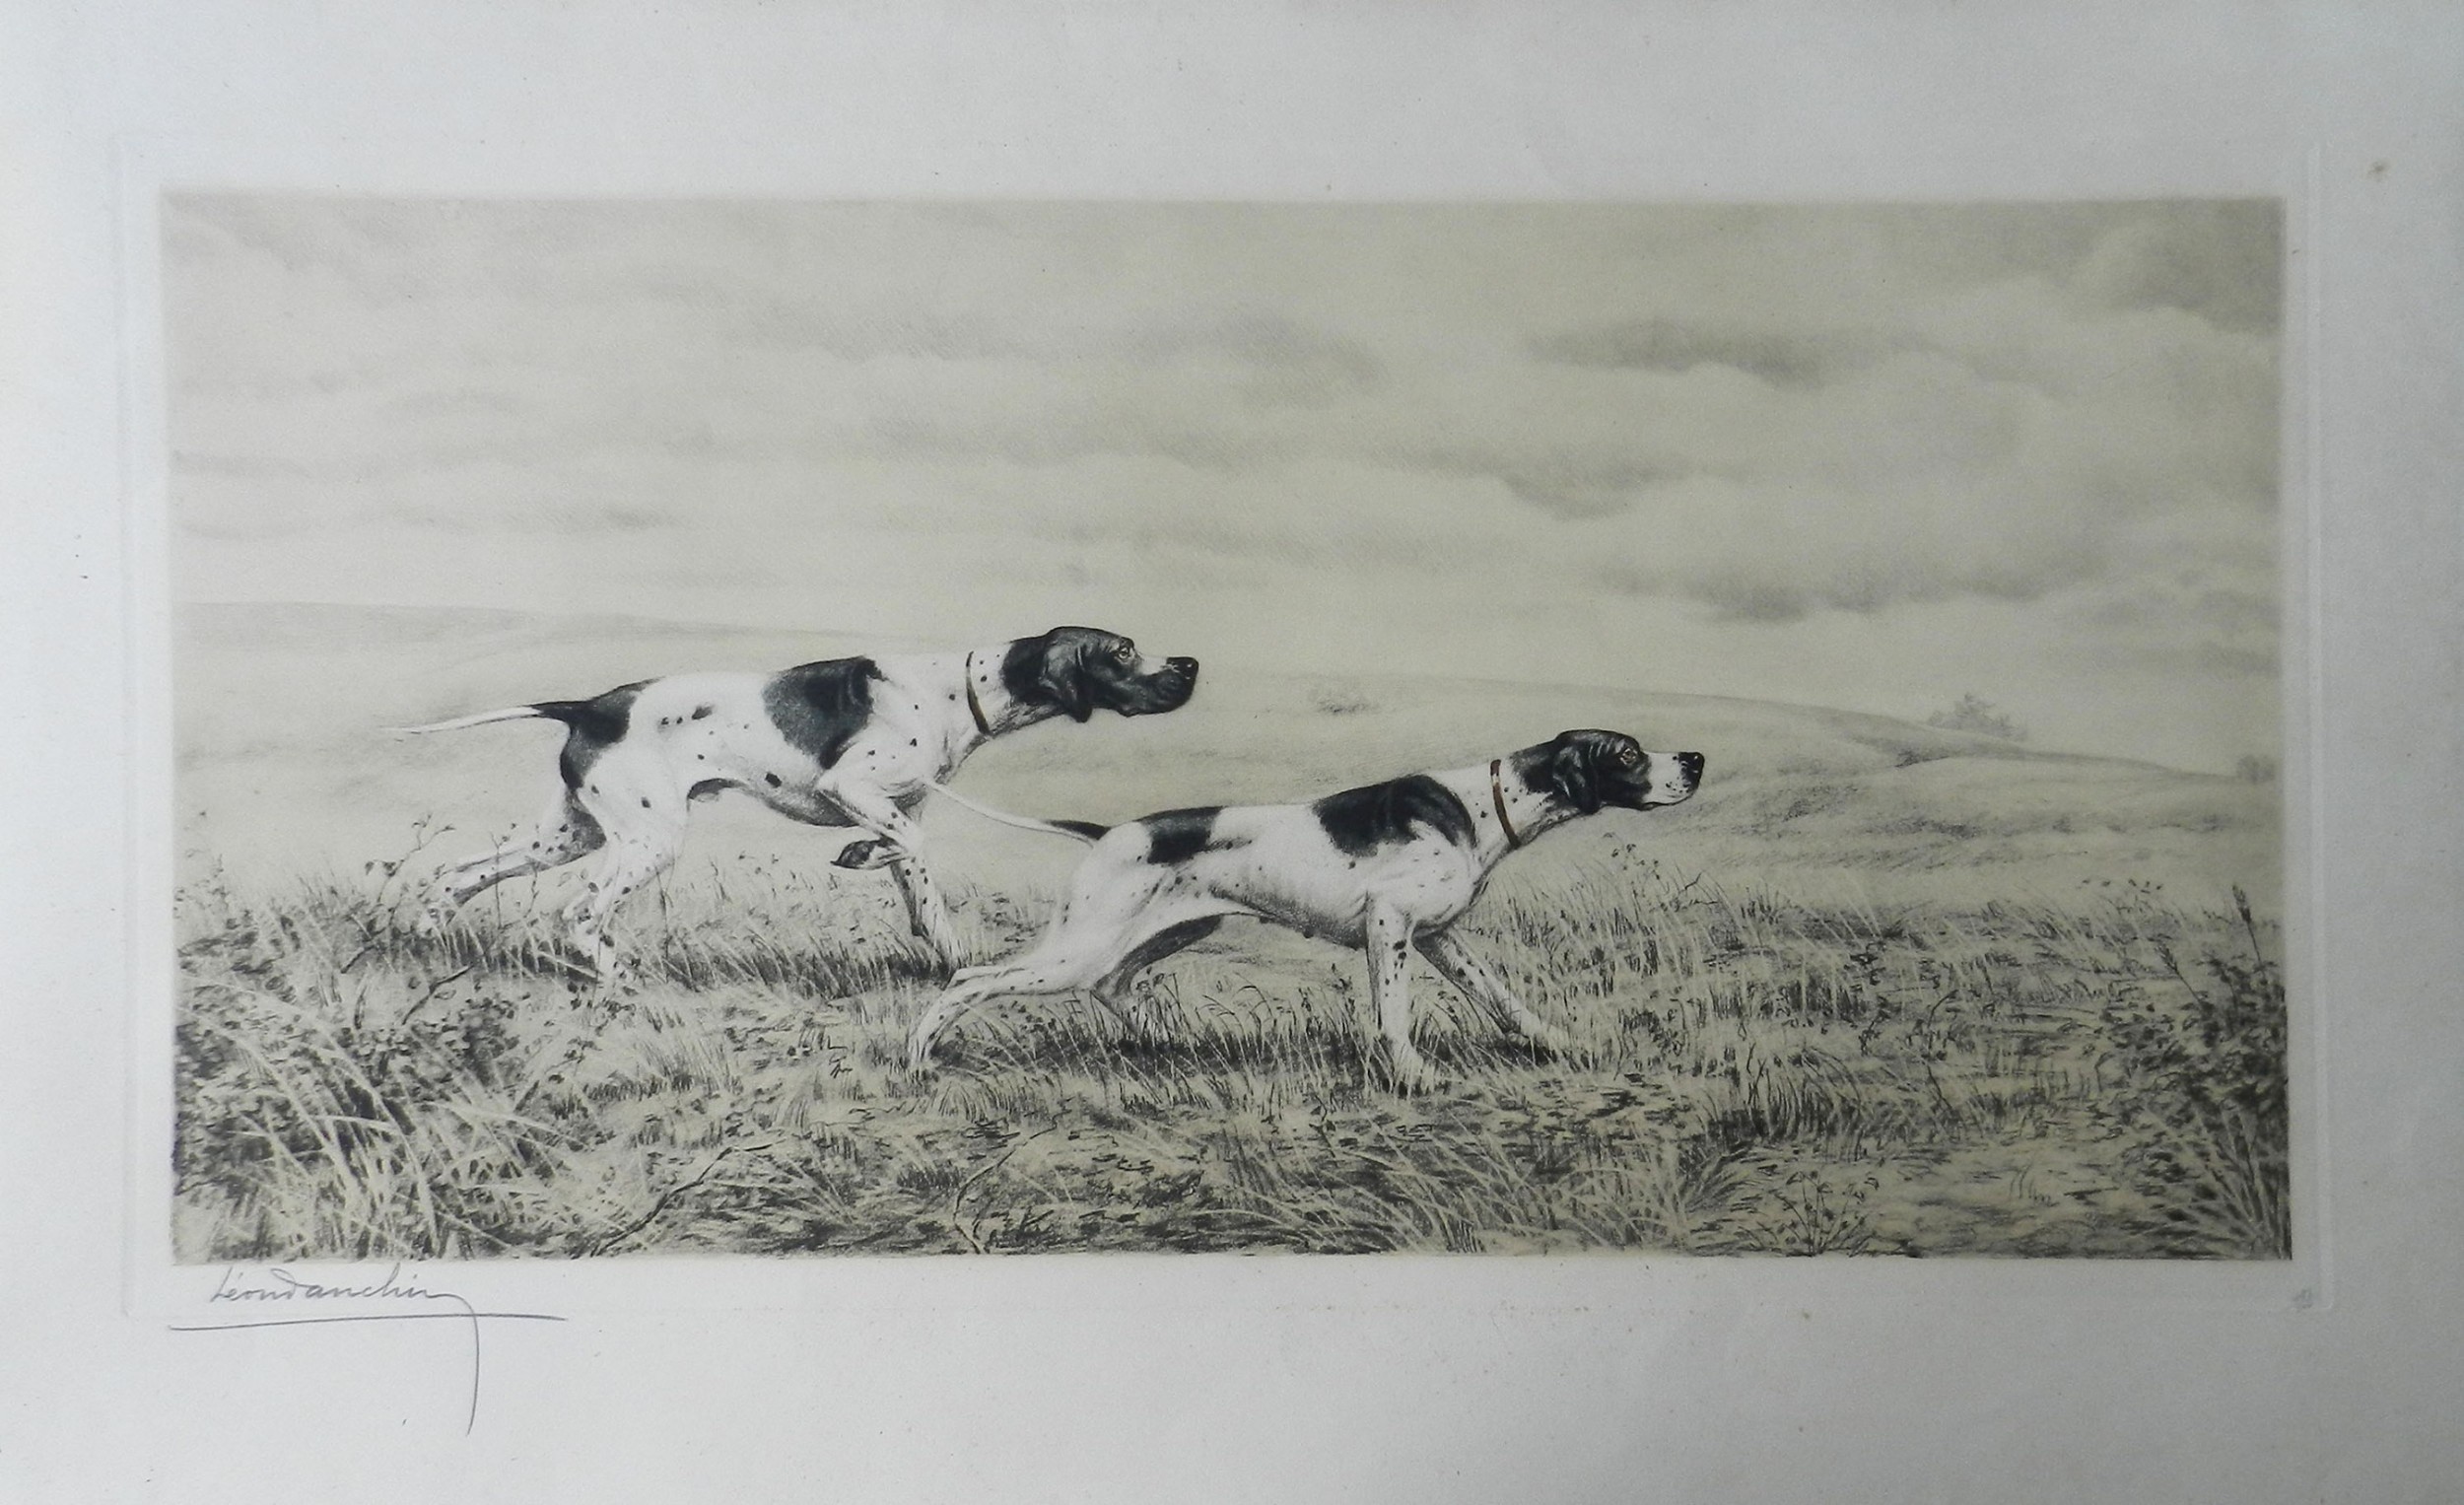 pair of pointers by leon danchin engraving c1920